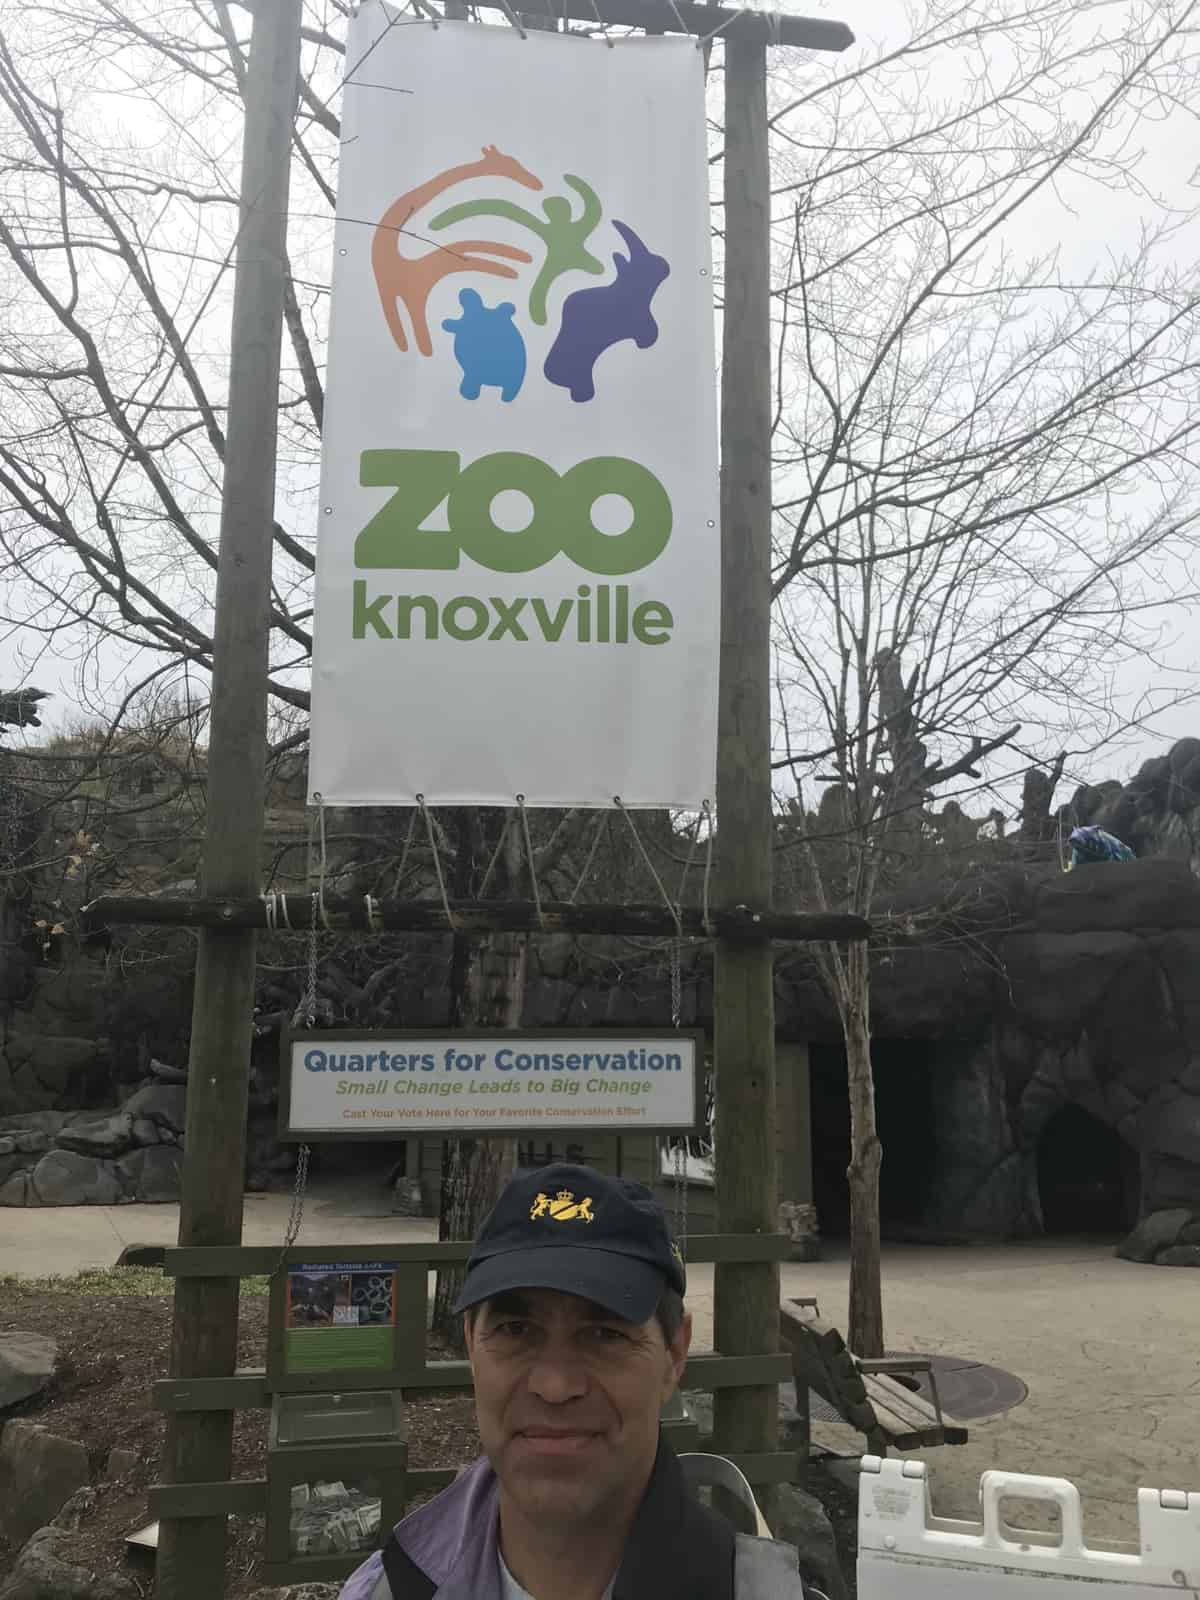 knoxville-zoo